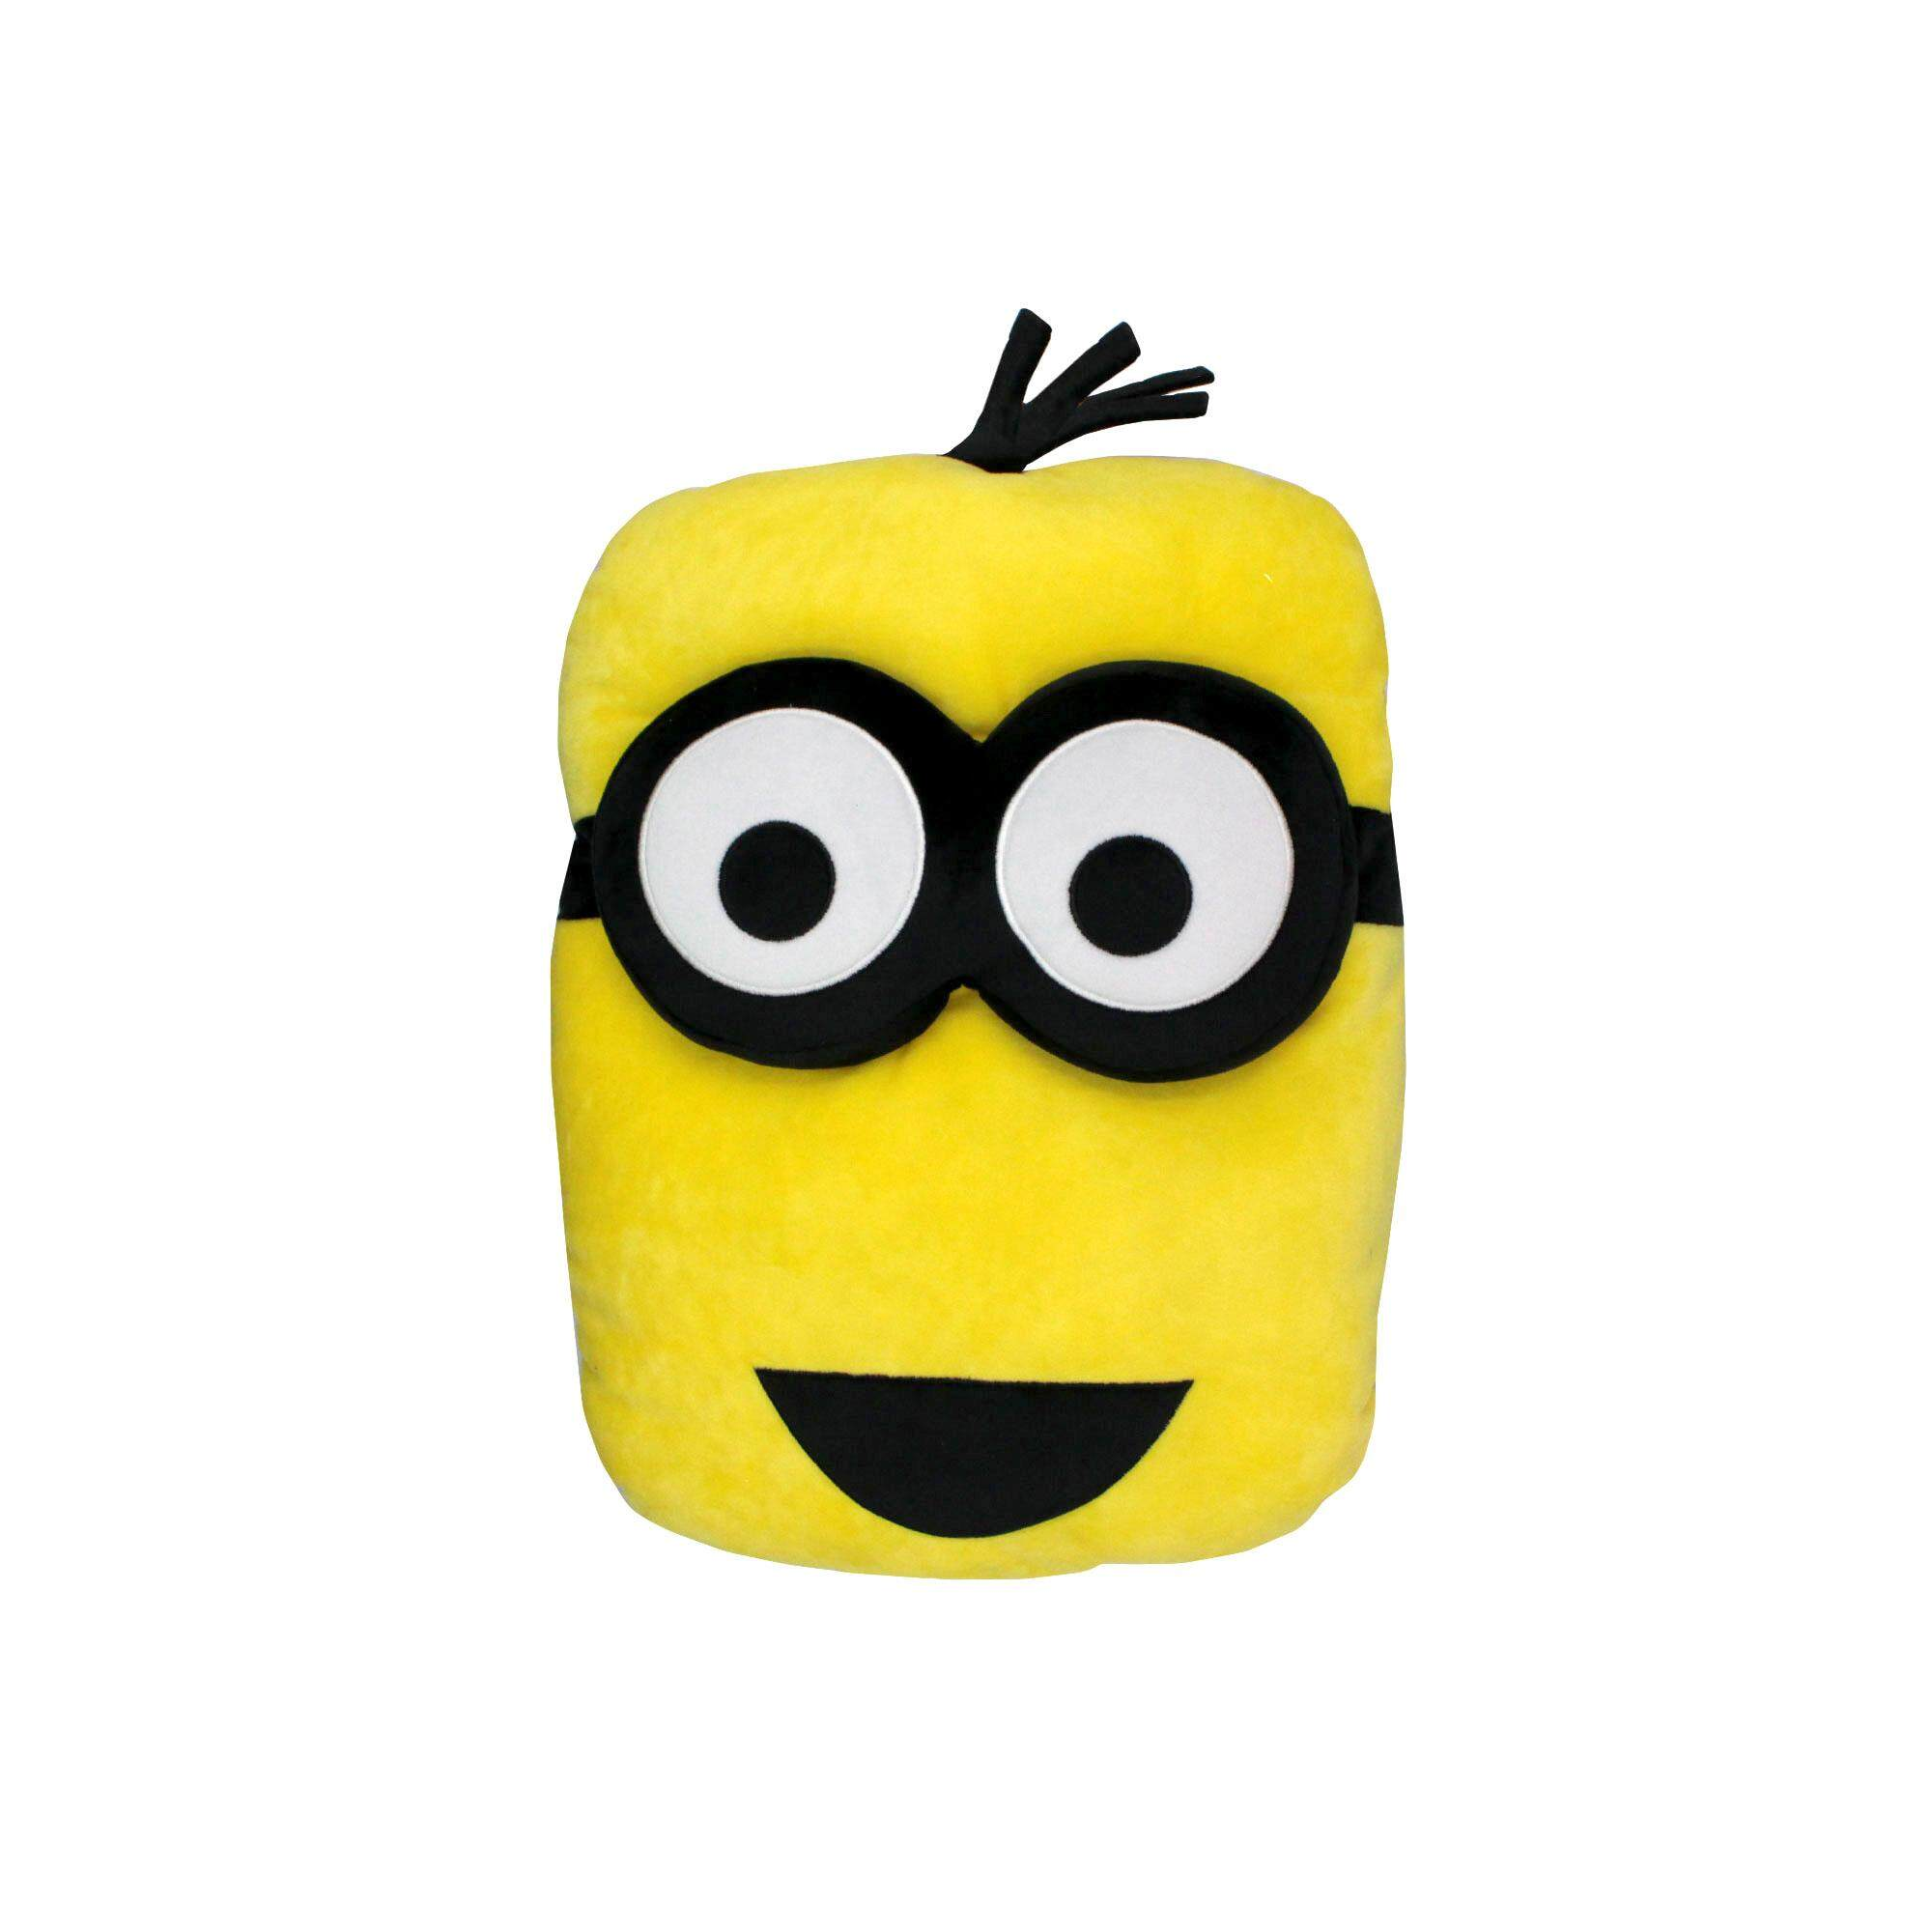 Despicable Me Minions Cartoon Character Cushion - Kevin